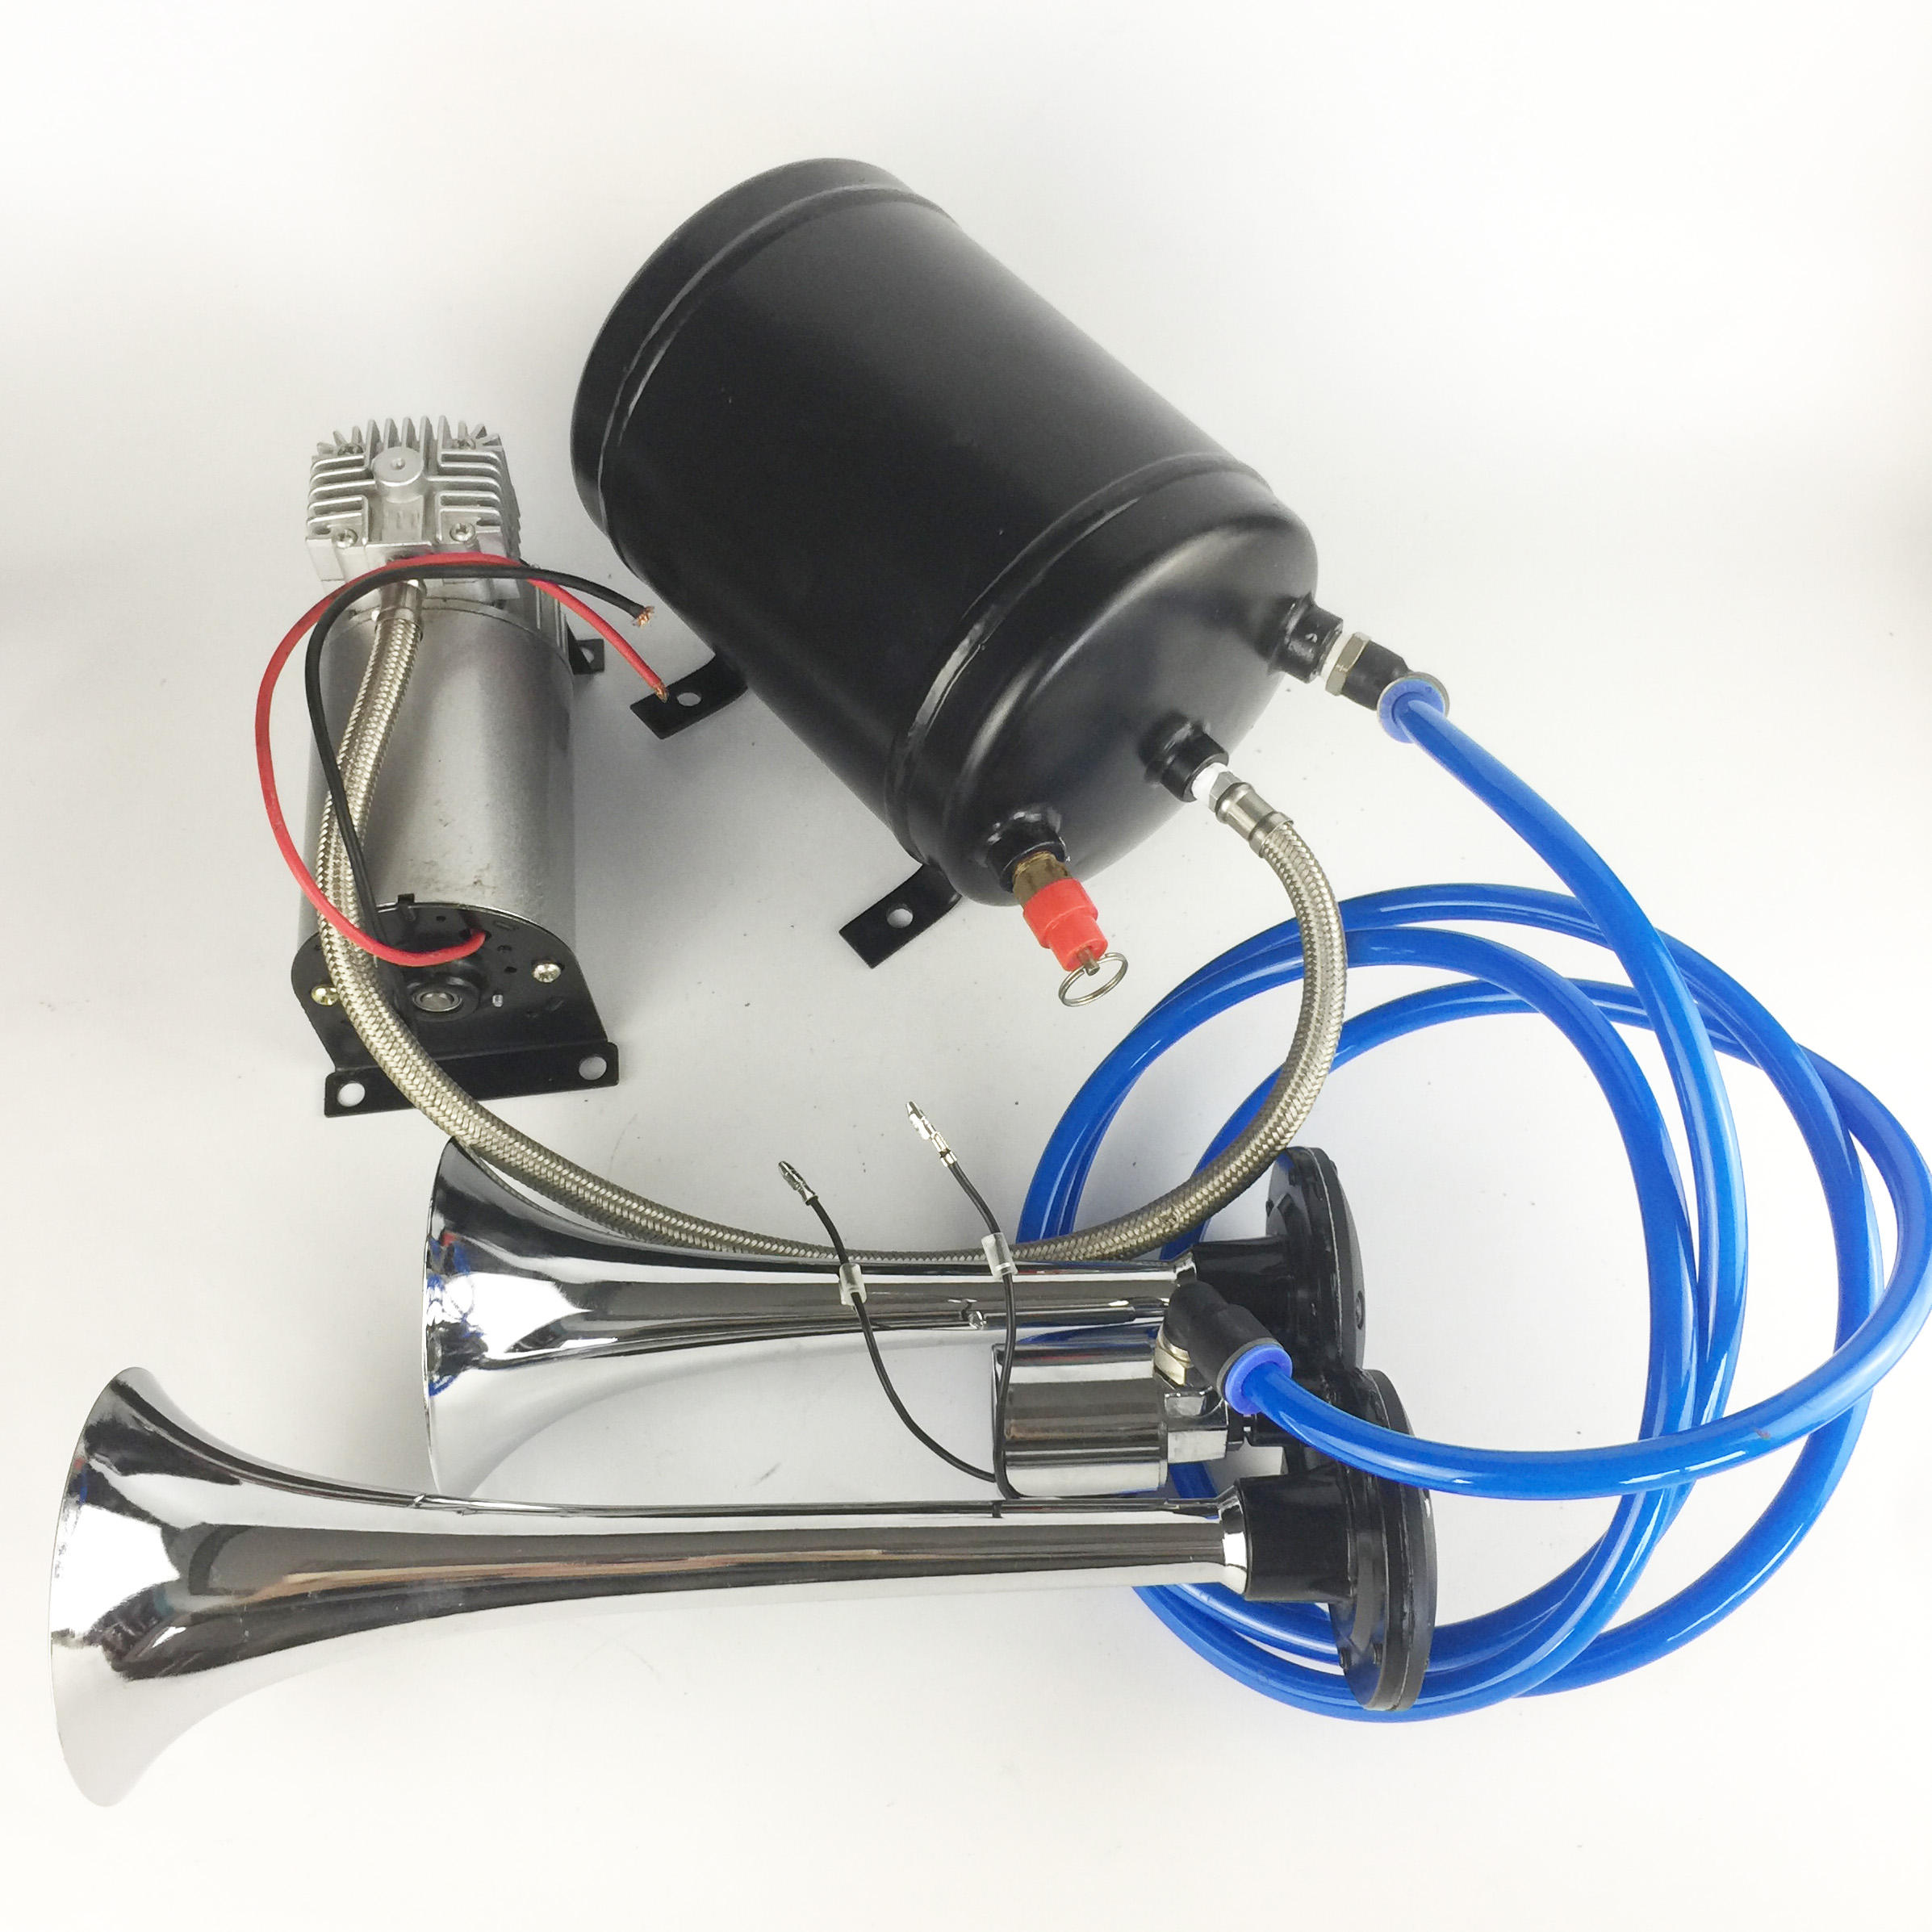 Air Horn, Chrome Zinc Dual Trumpet Air Horn with Compressor for Any 12V Vehicles Trucks Lorrys Trains Boats Cars Vans